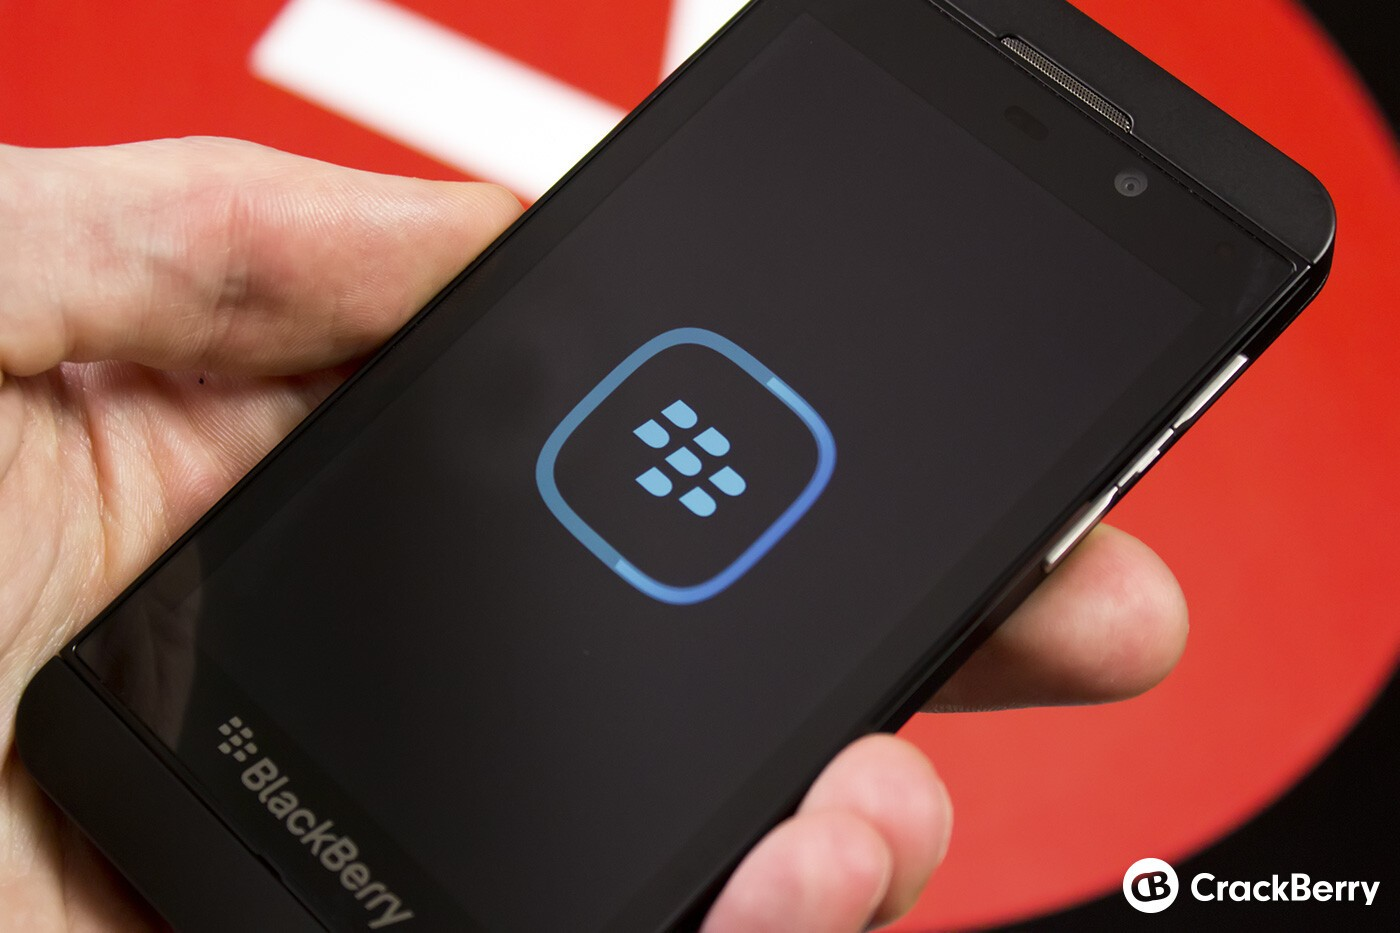 BlackBerry Z10 makes T3 Gadget Awards shortlist for Phone of the Year 2013